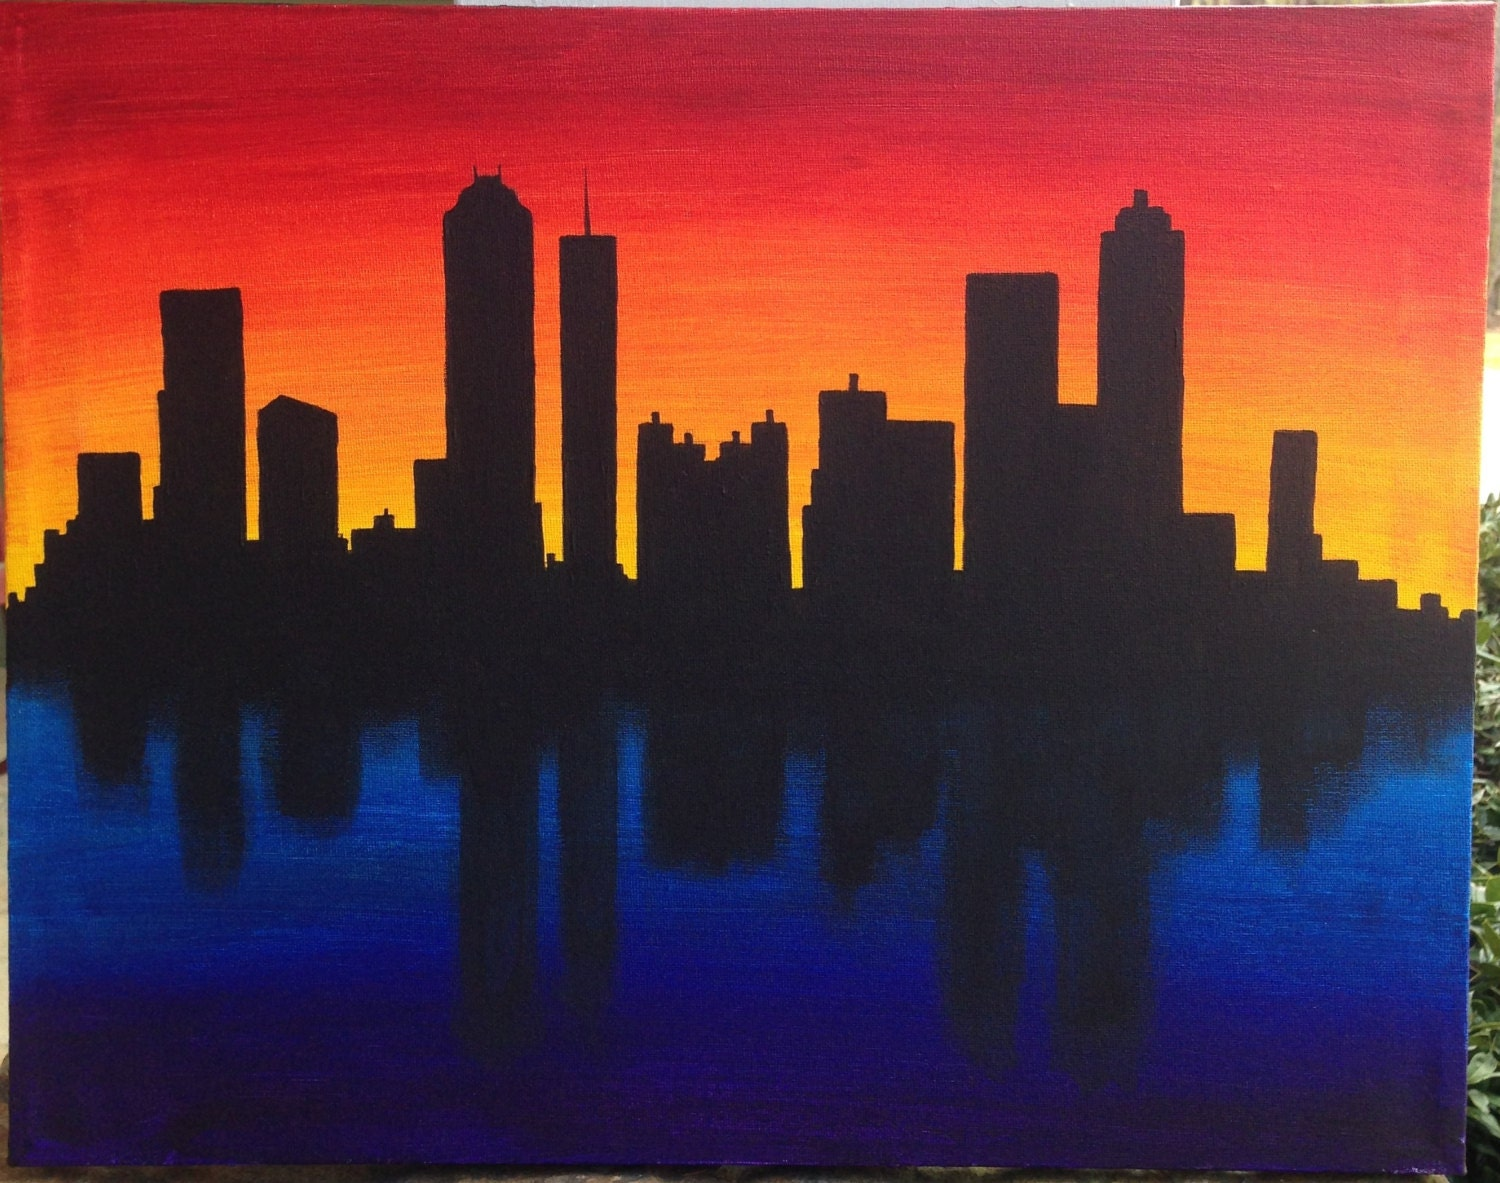 How to Paint a City Skyline in Watercolor How to Paint a City Skyline in Watercolor new foto